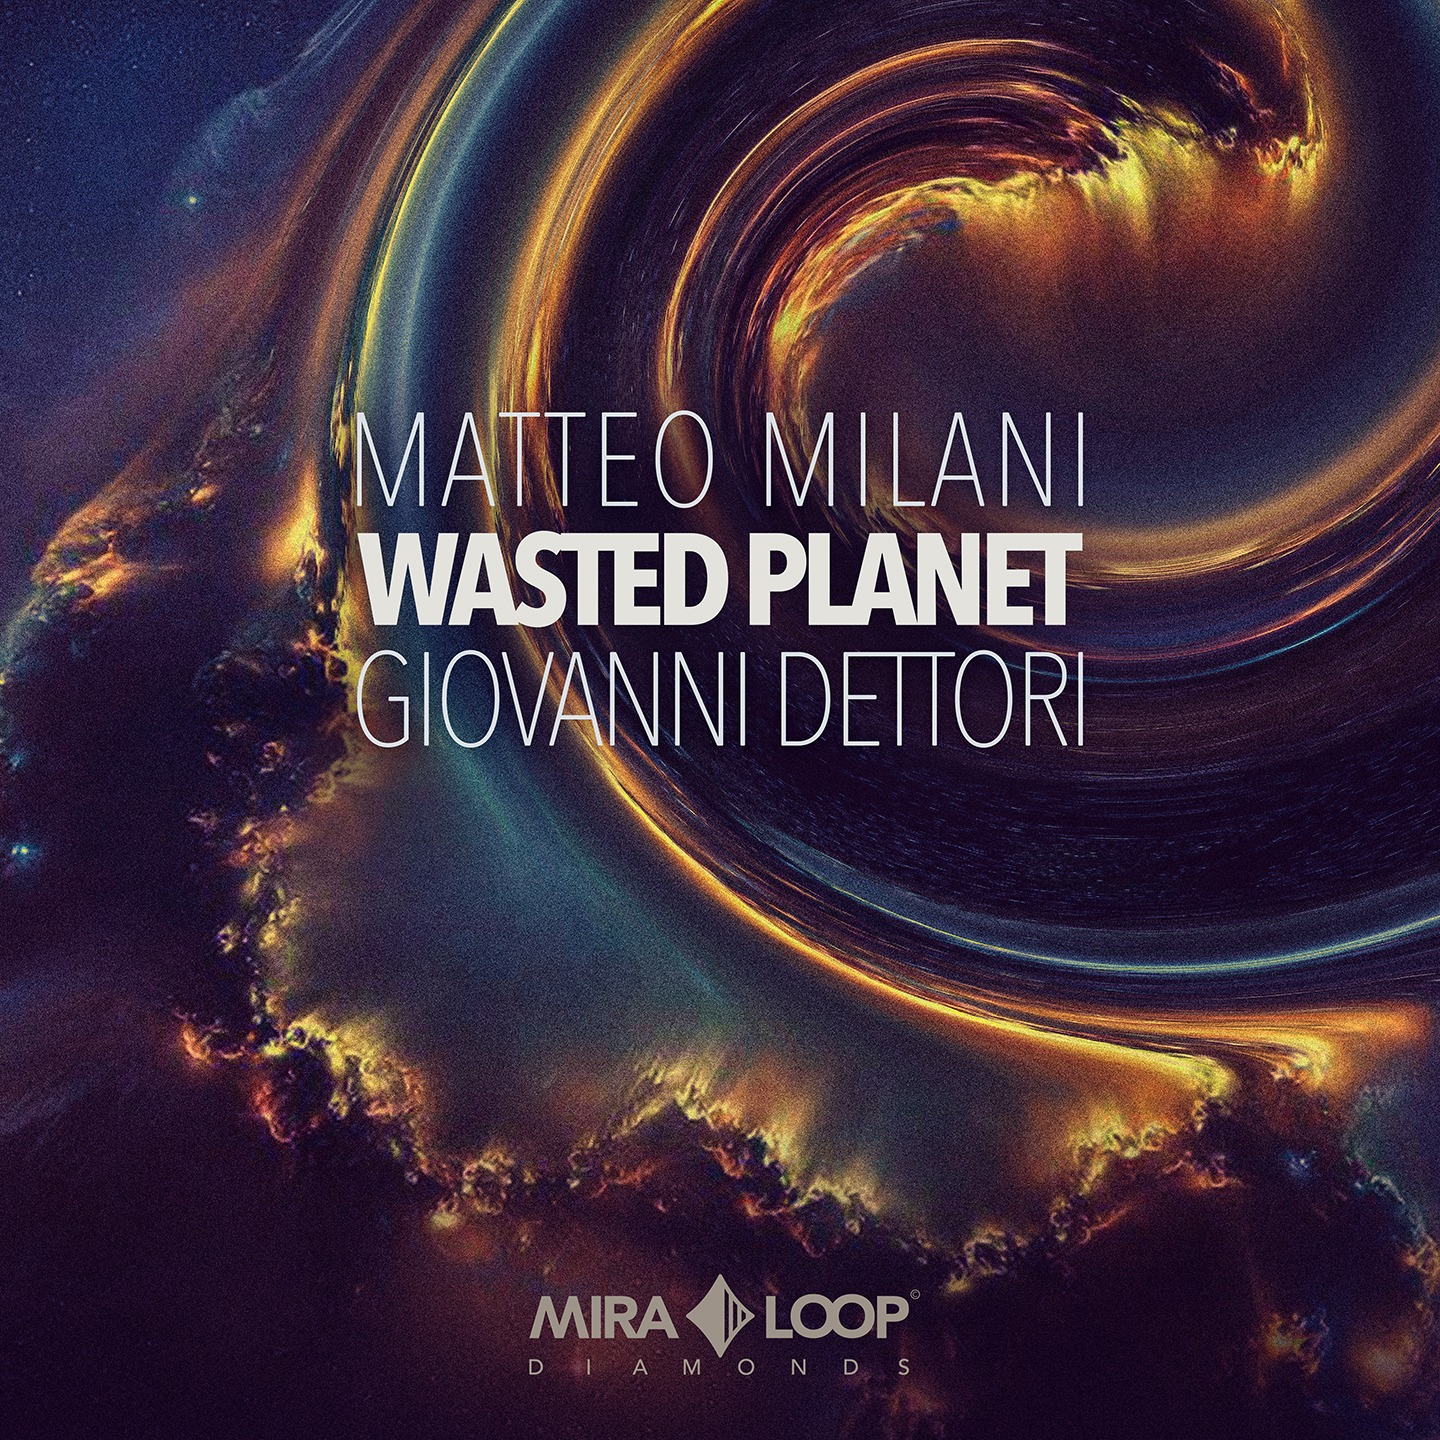 Wasted Planet - Matteo Milani - Unidentified Sound Object